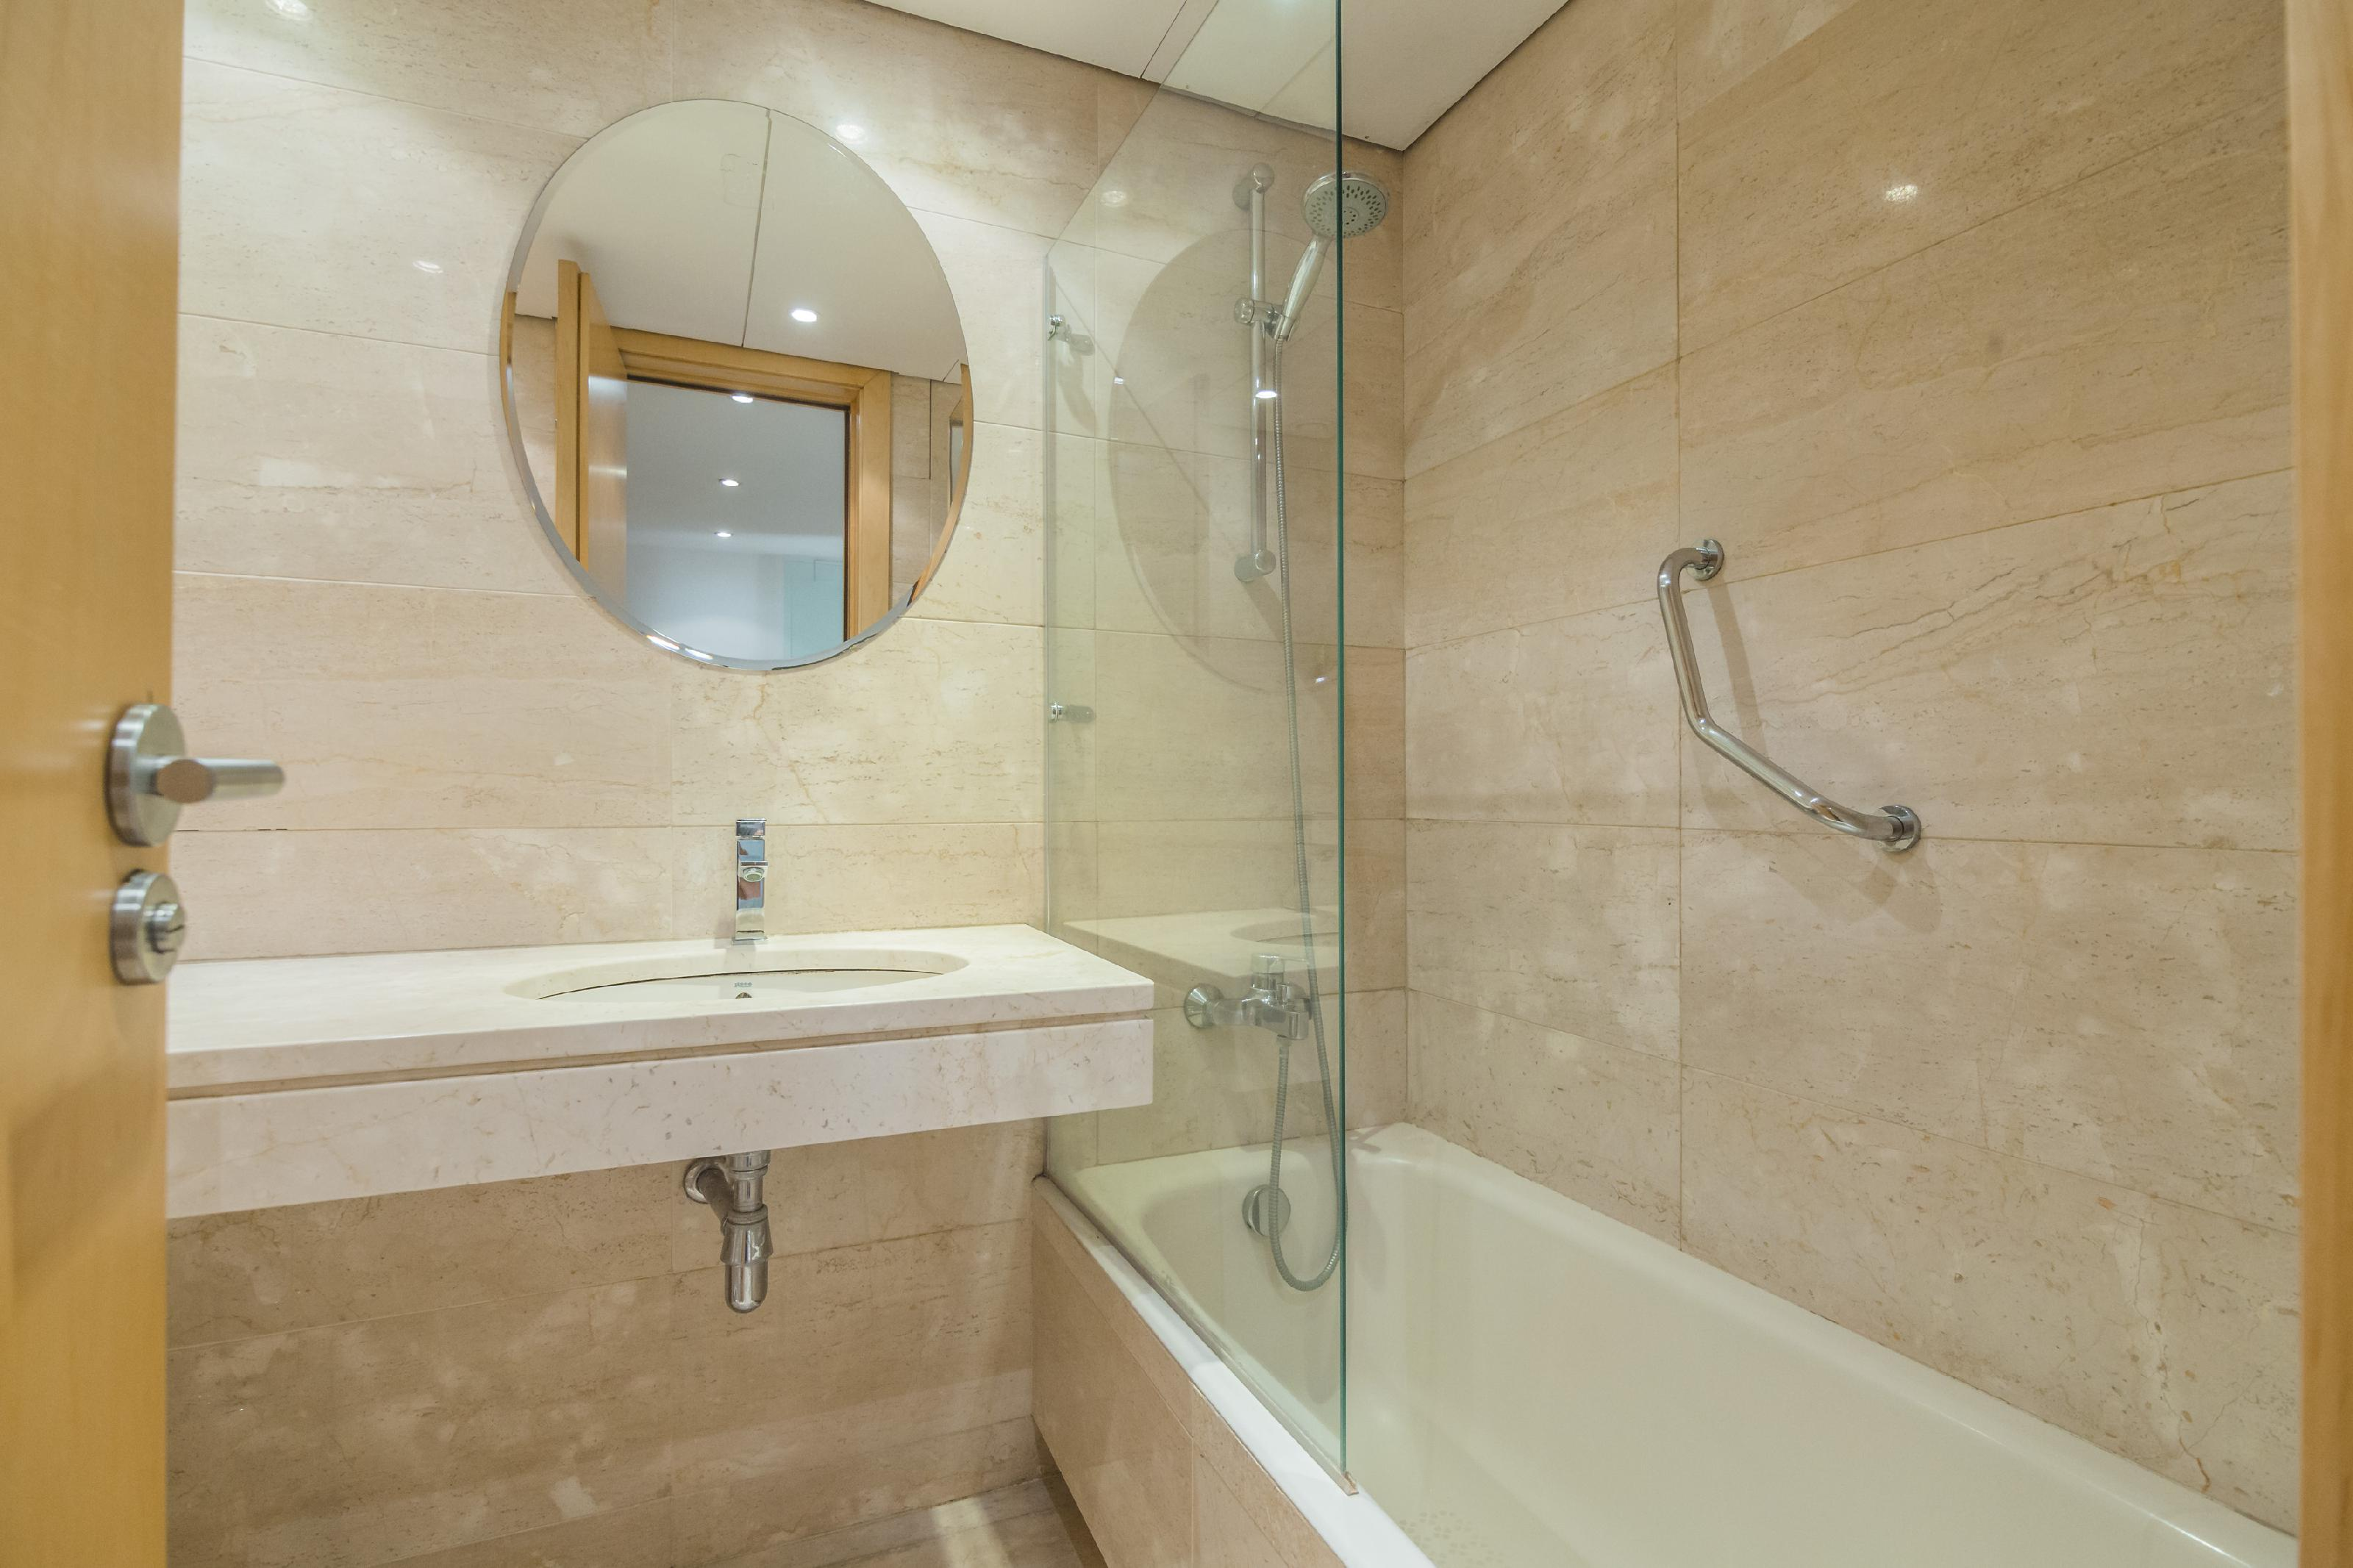 109651 Apartment for sale in Eixample, Dreta Eixample 34